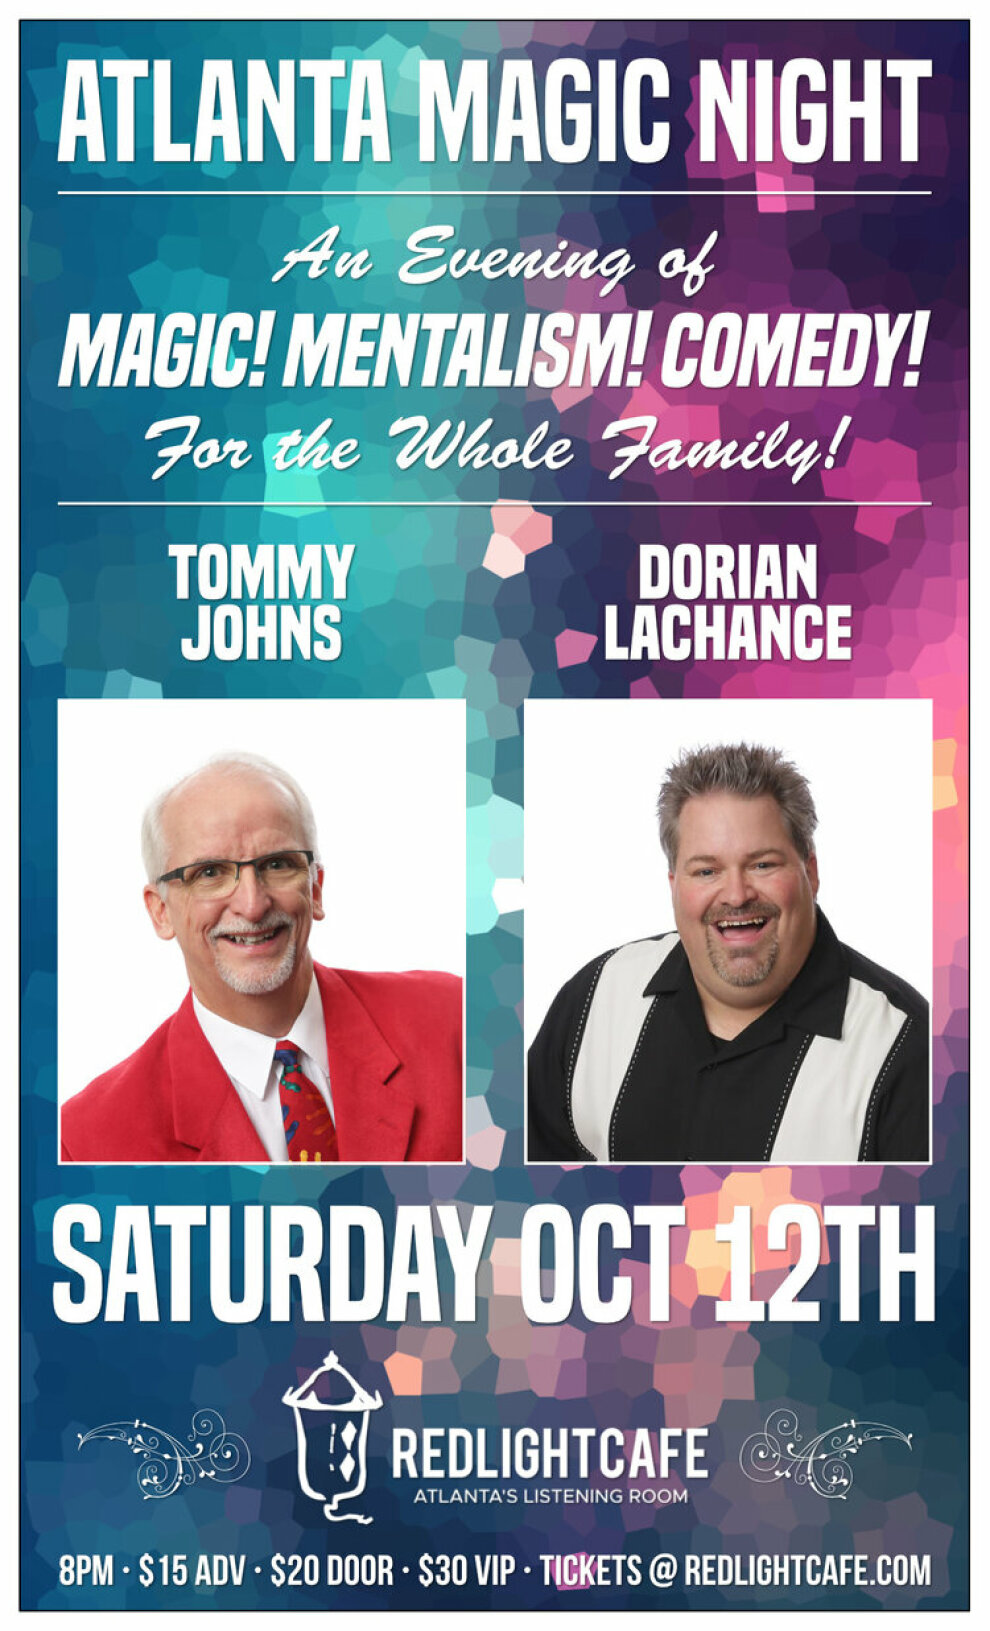 Atlanta Magic Night Featuring Tommy Johns Dorian Lachance Red Light Cafe Atlanta Ga Oct 12 2019 Poster 1200